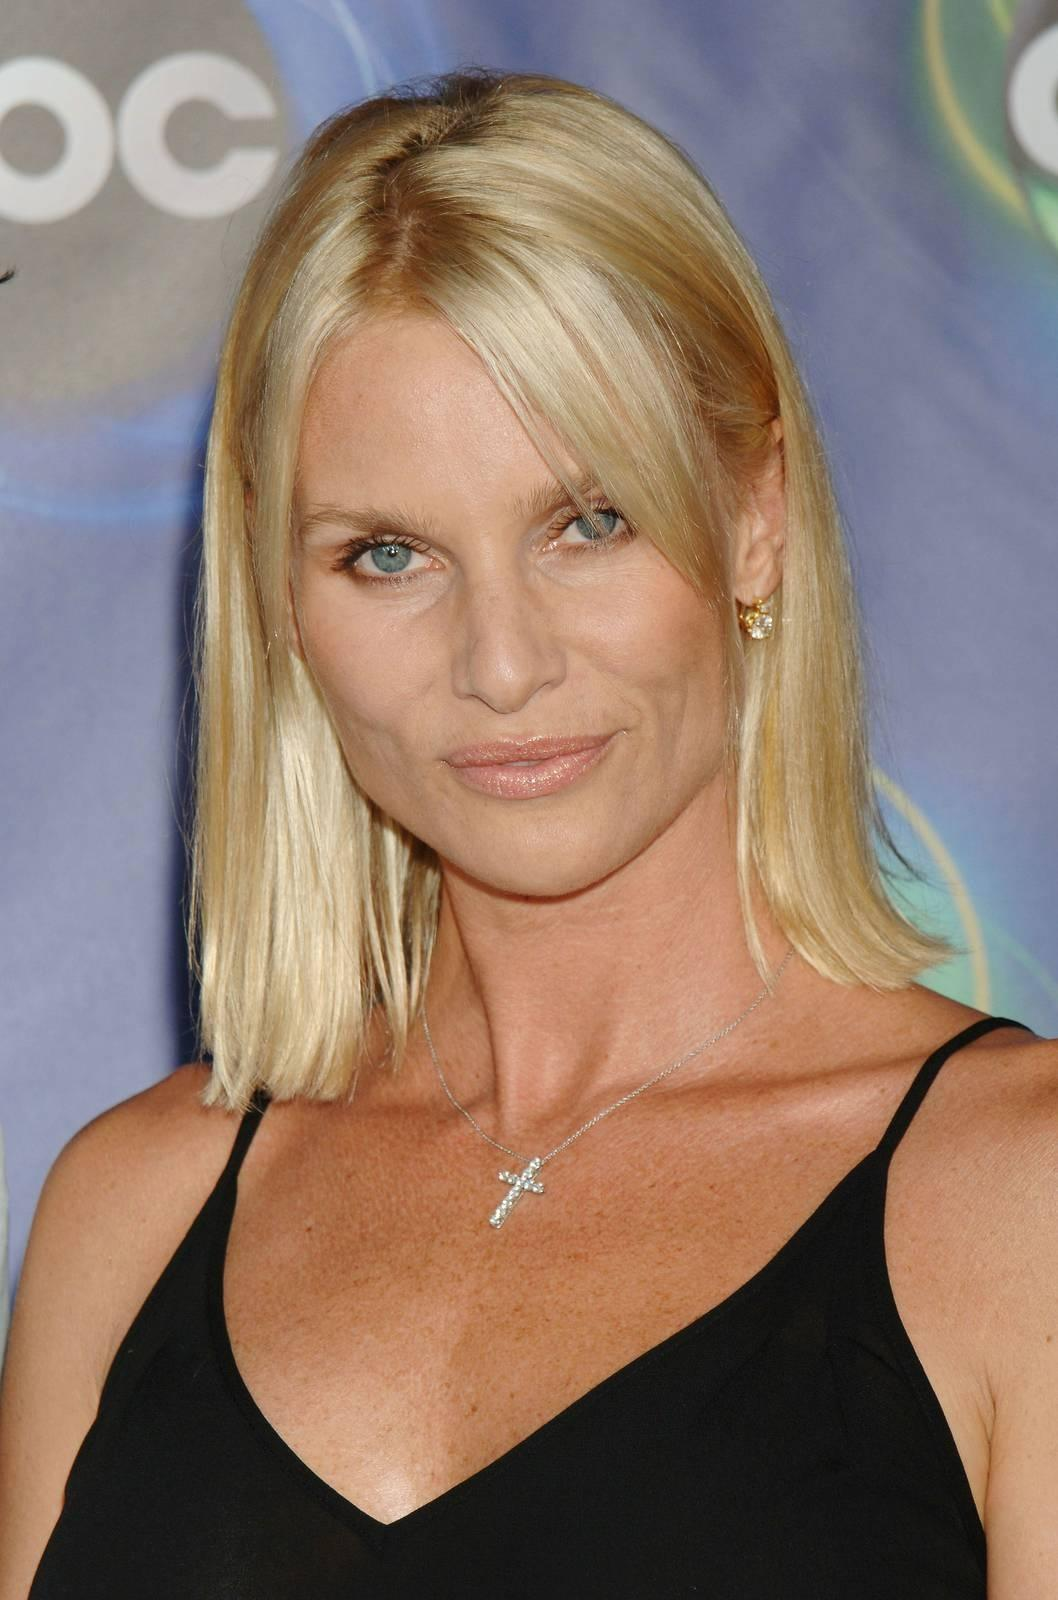 1000+ images about Nicolette Sheridan on Pinterest